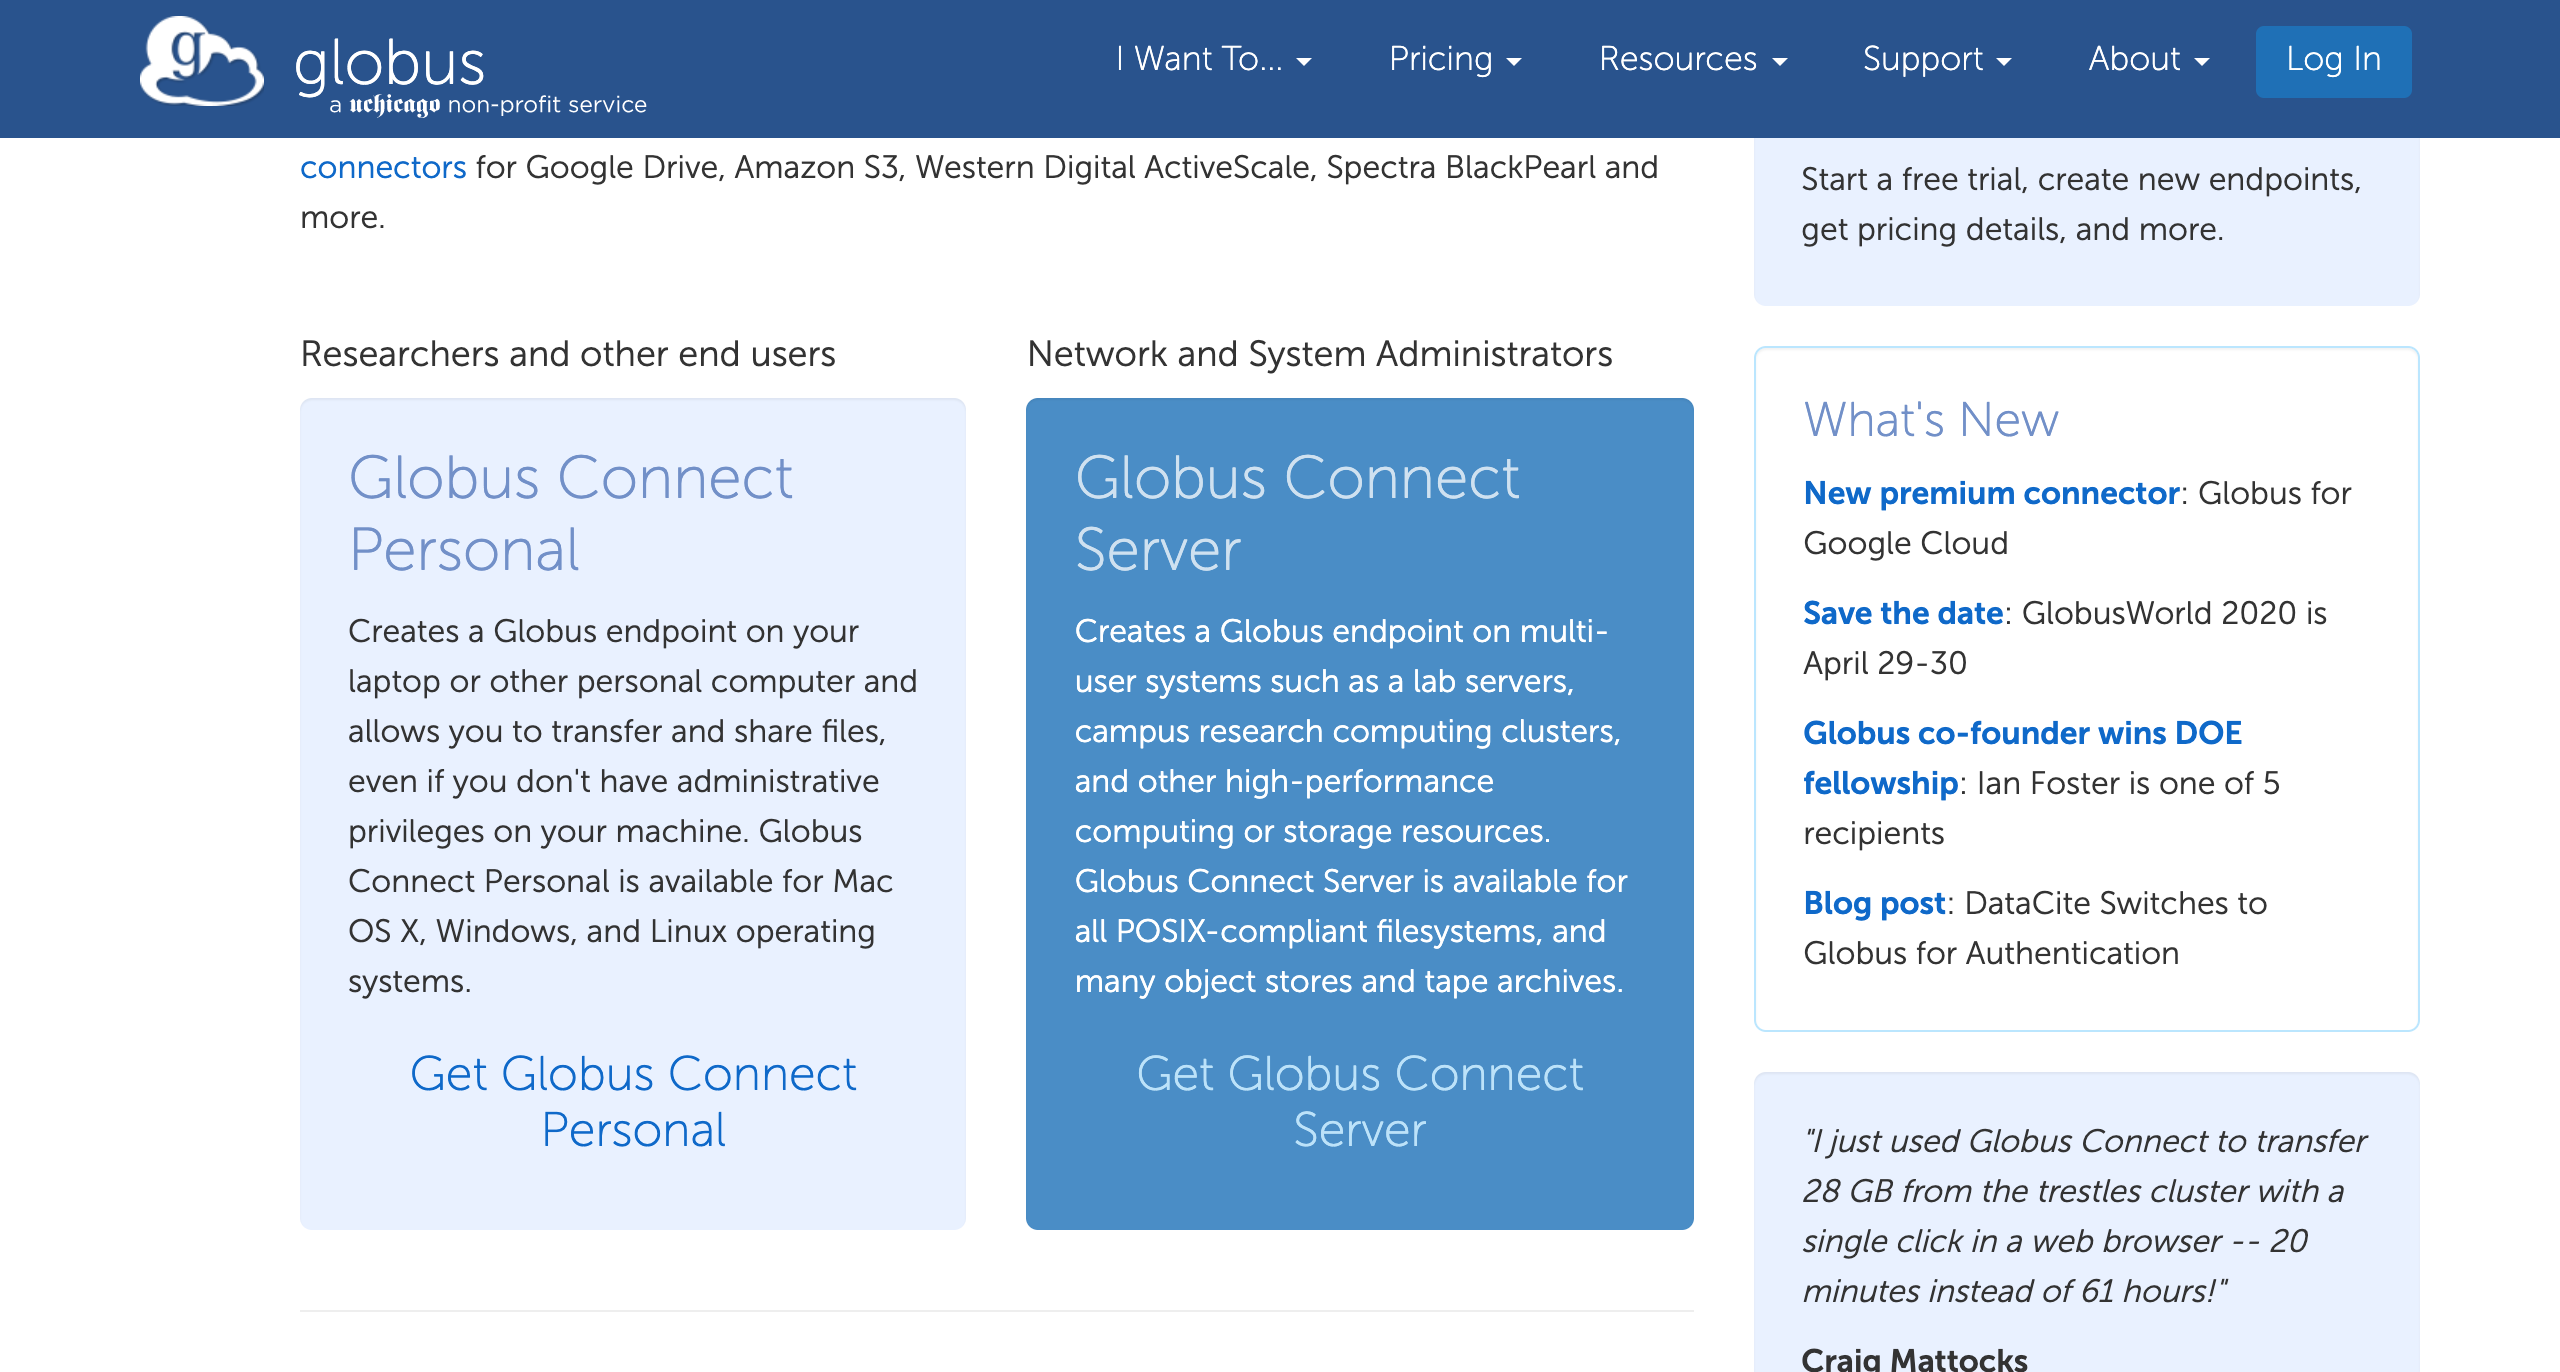 getting_started/images/globus-connect-page.png